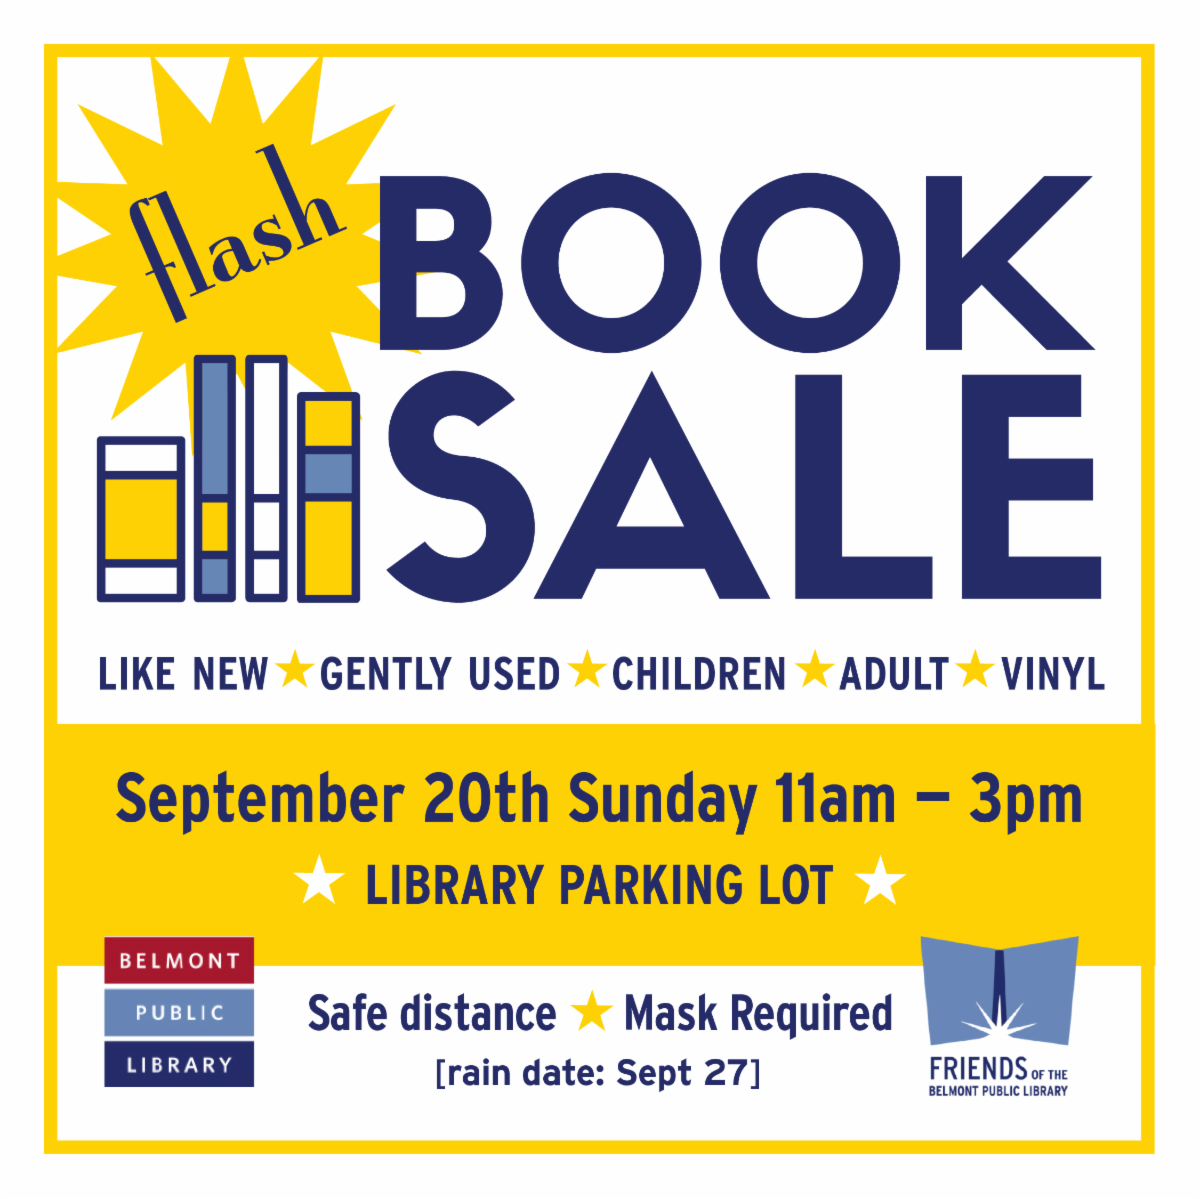 Friends Flash Book Sale September 20 11am-3pm